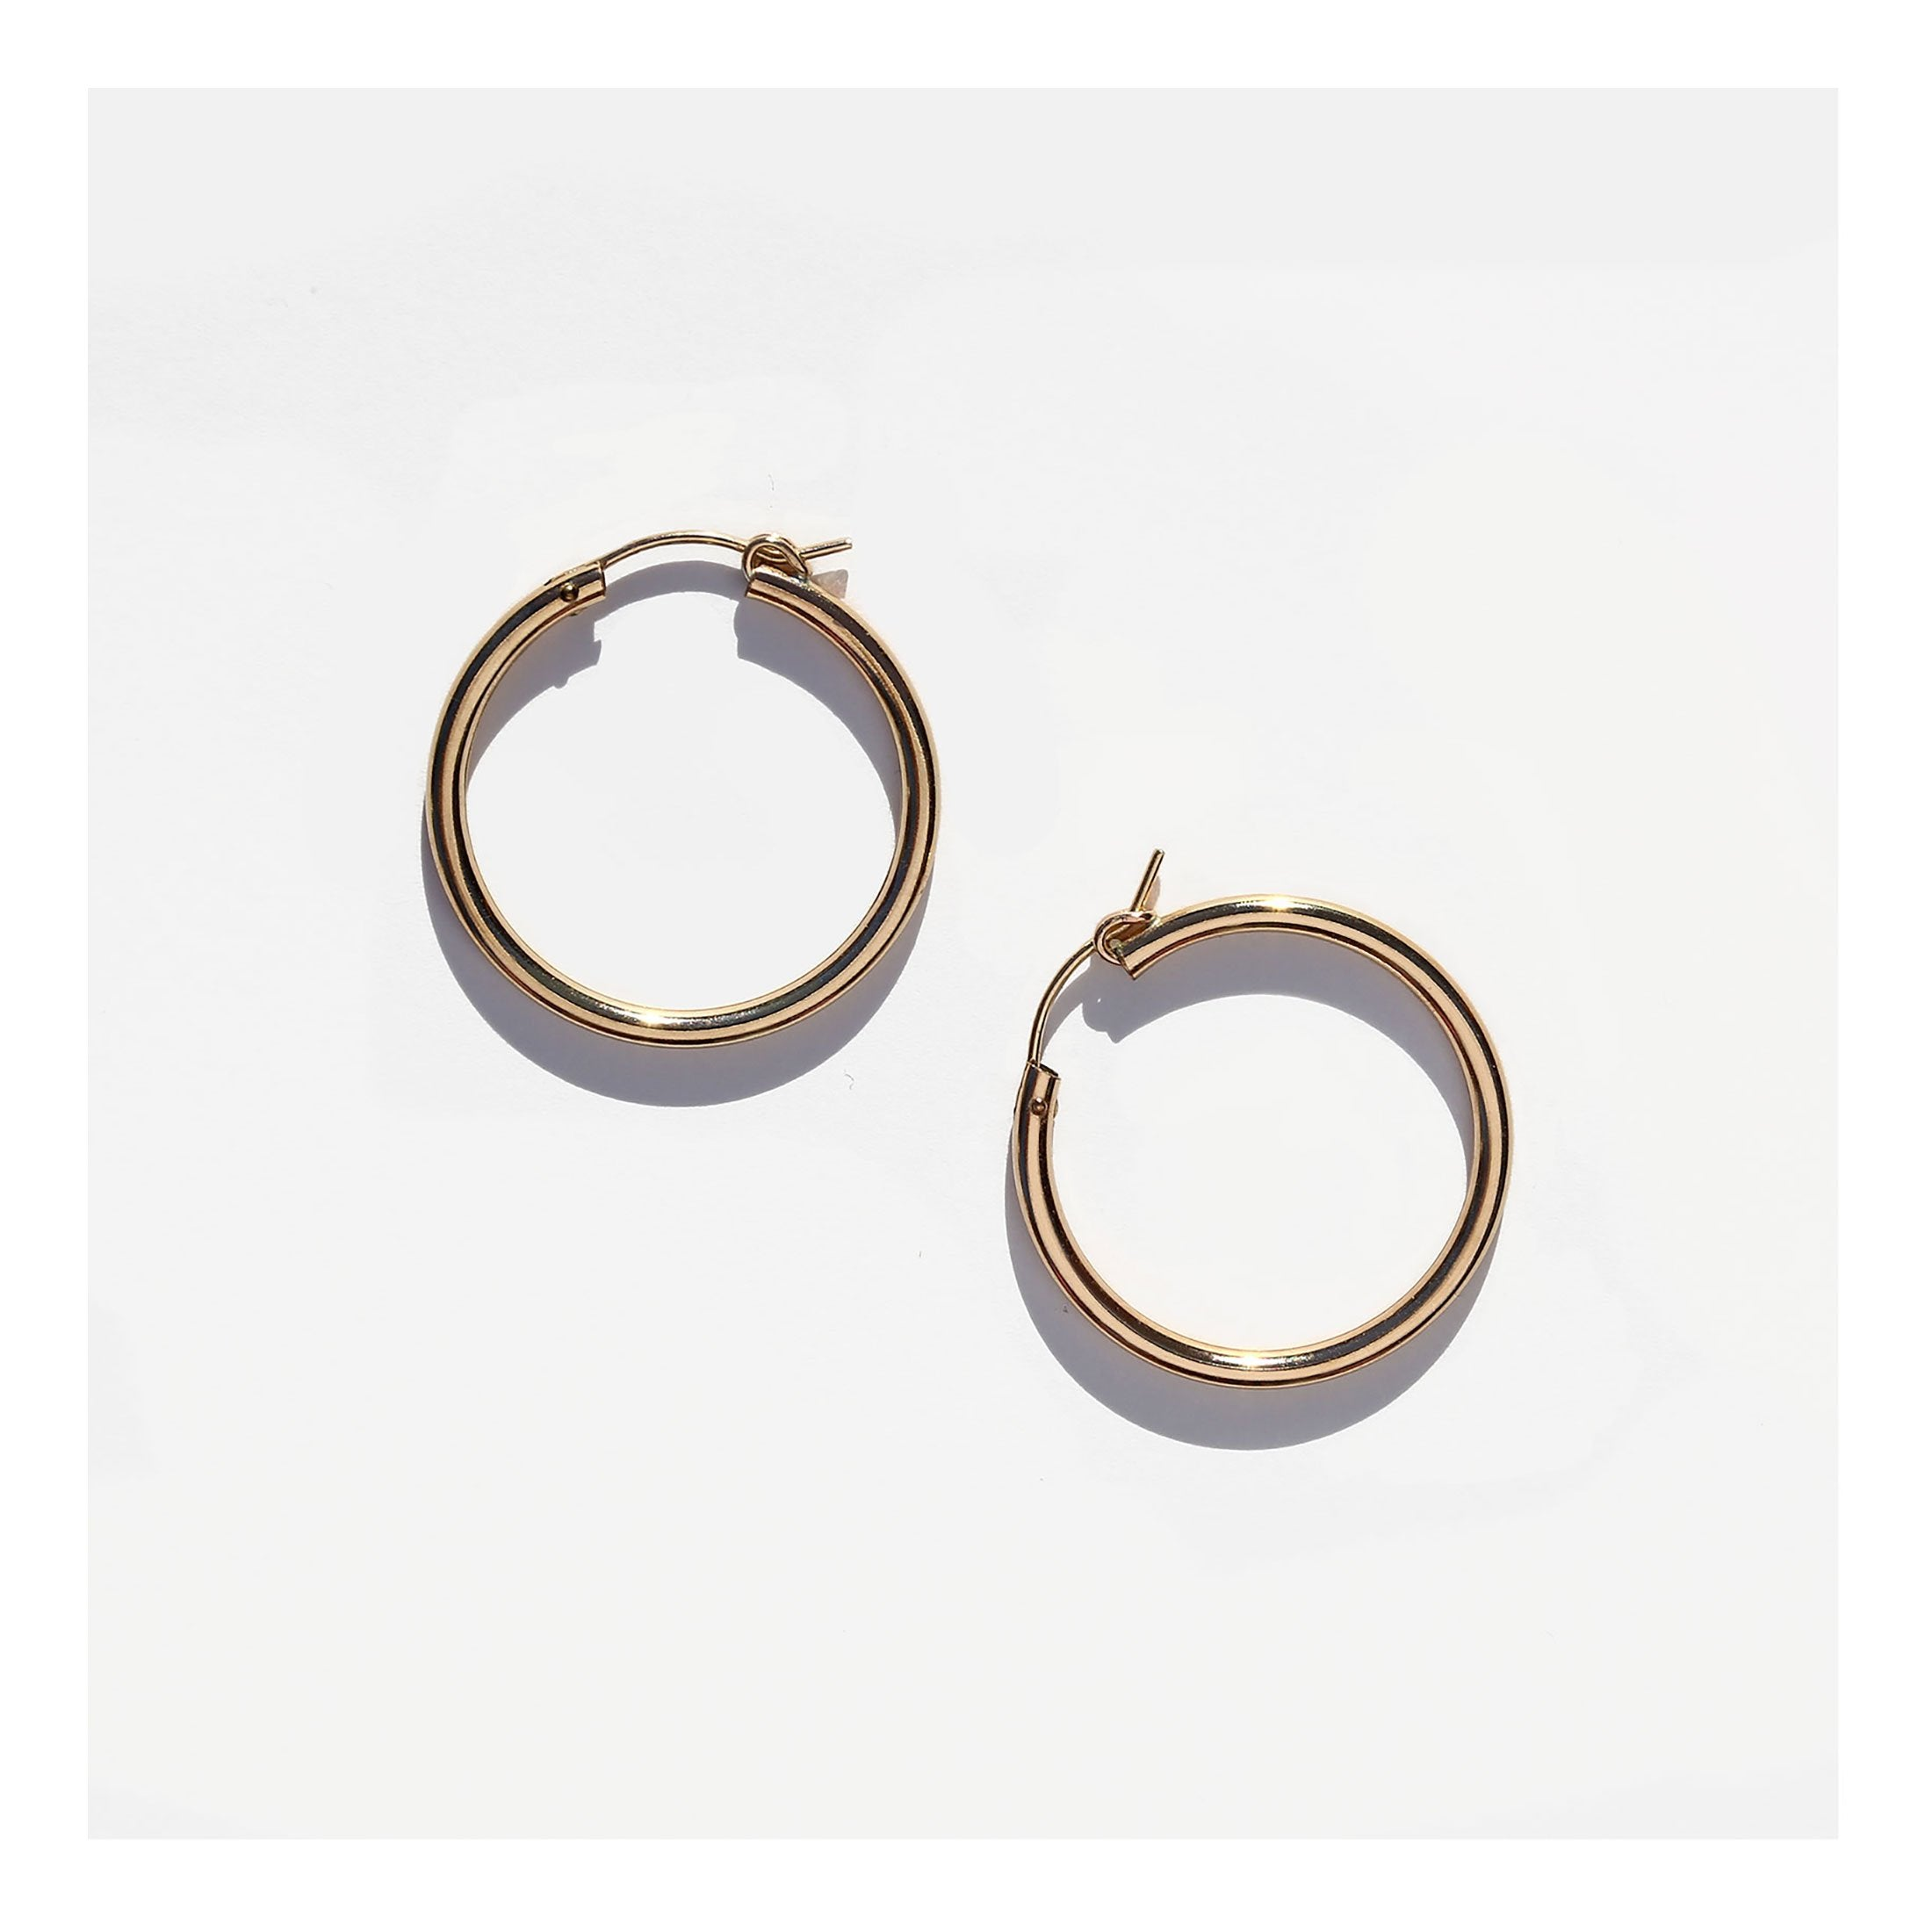 Thick gold hoop earrings in 14k gold filled metal, medium sized